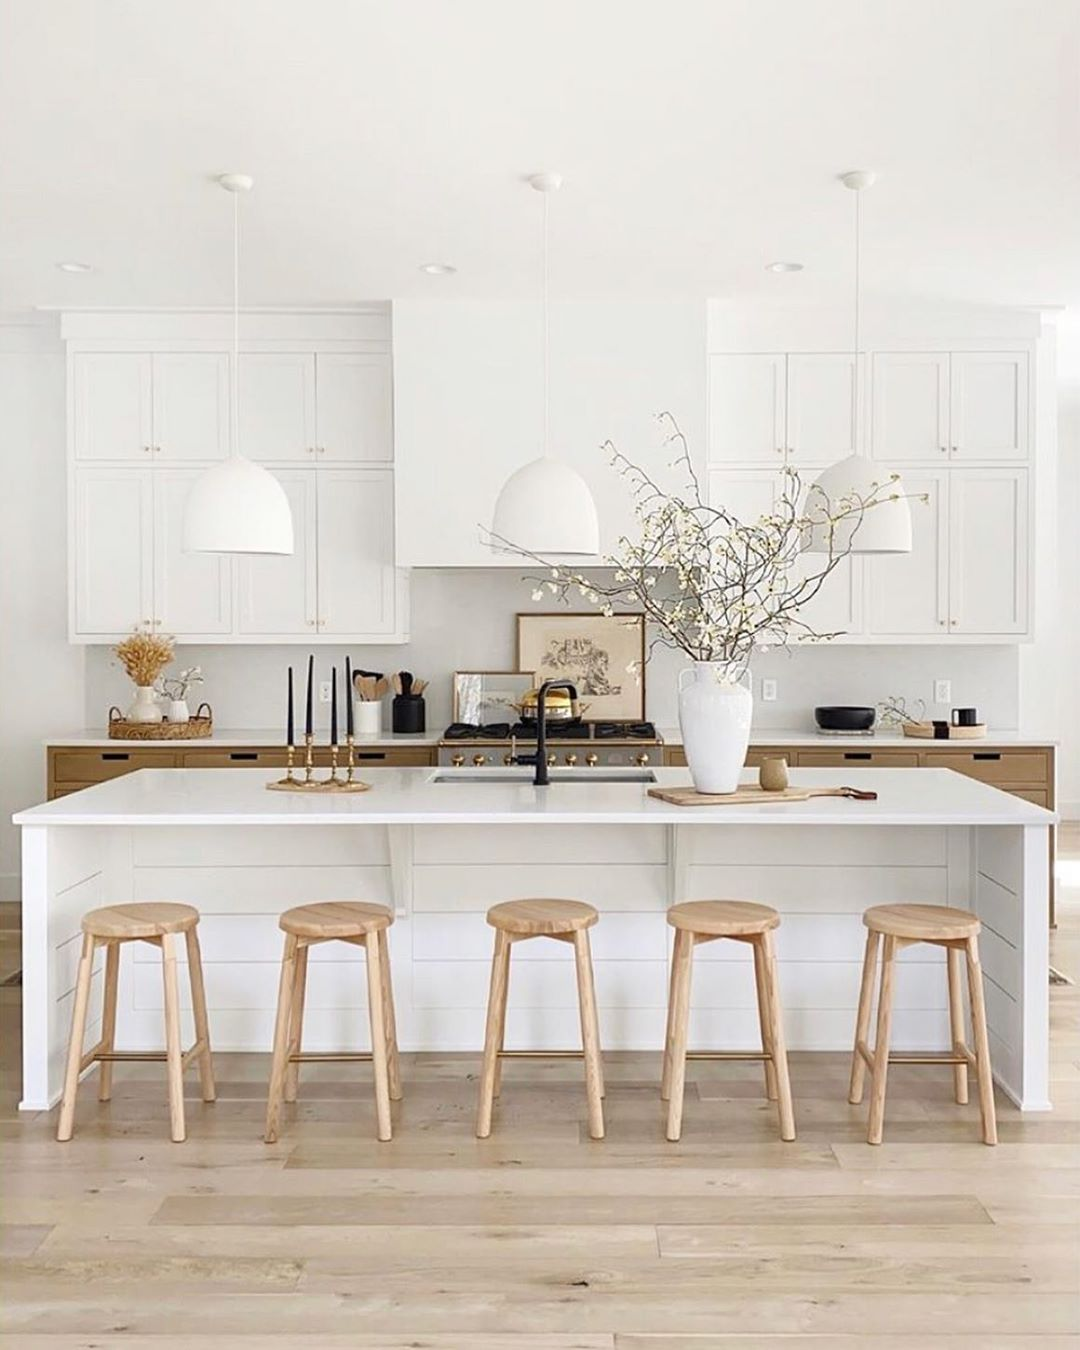 """Juniper Home's Instagram profile post: """"The perfect bright white kitchen with just the right amount of warmth!! We wouldn't mind cooking dinner there every night! Design by…"""""""